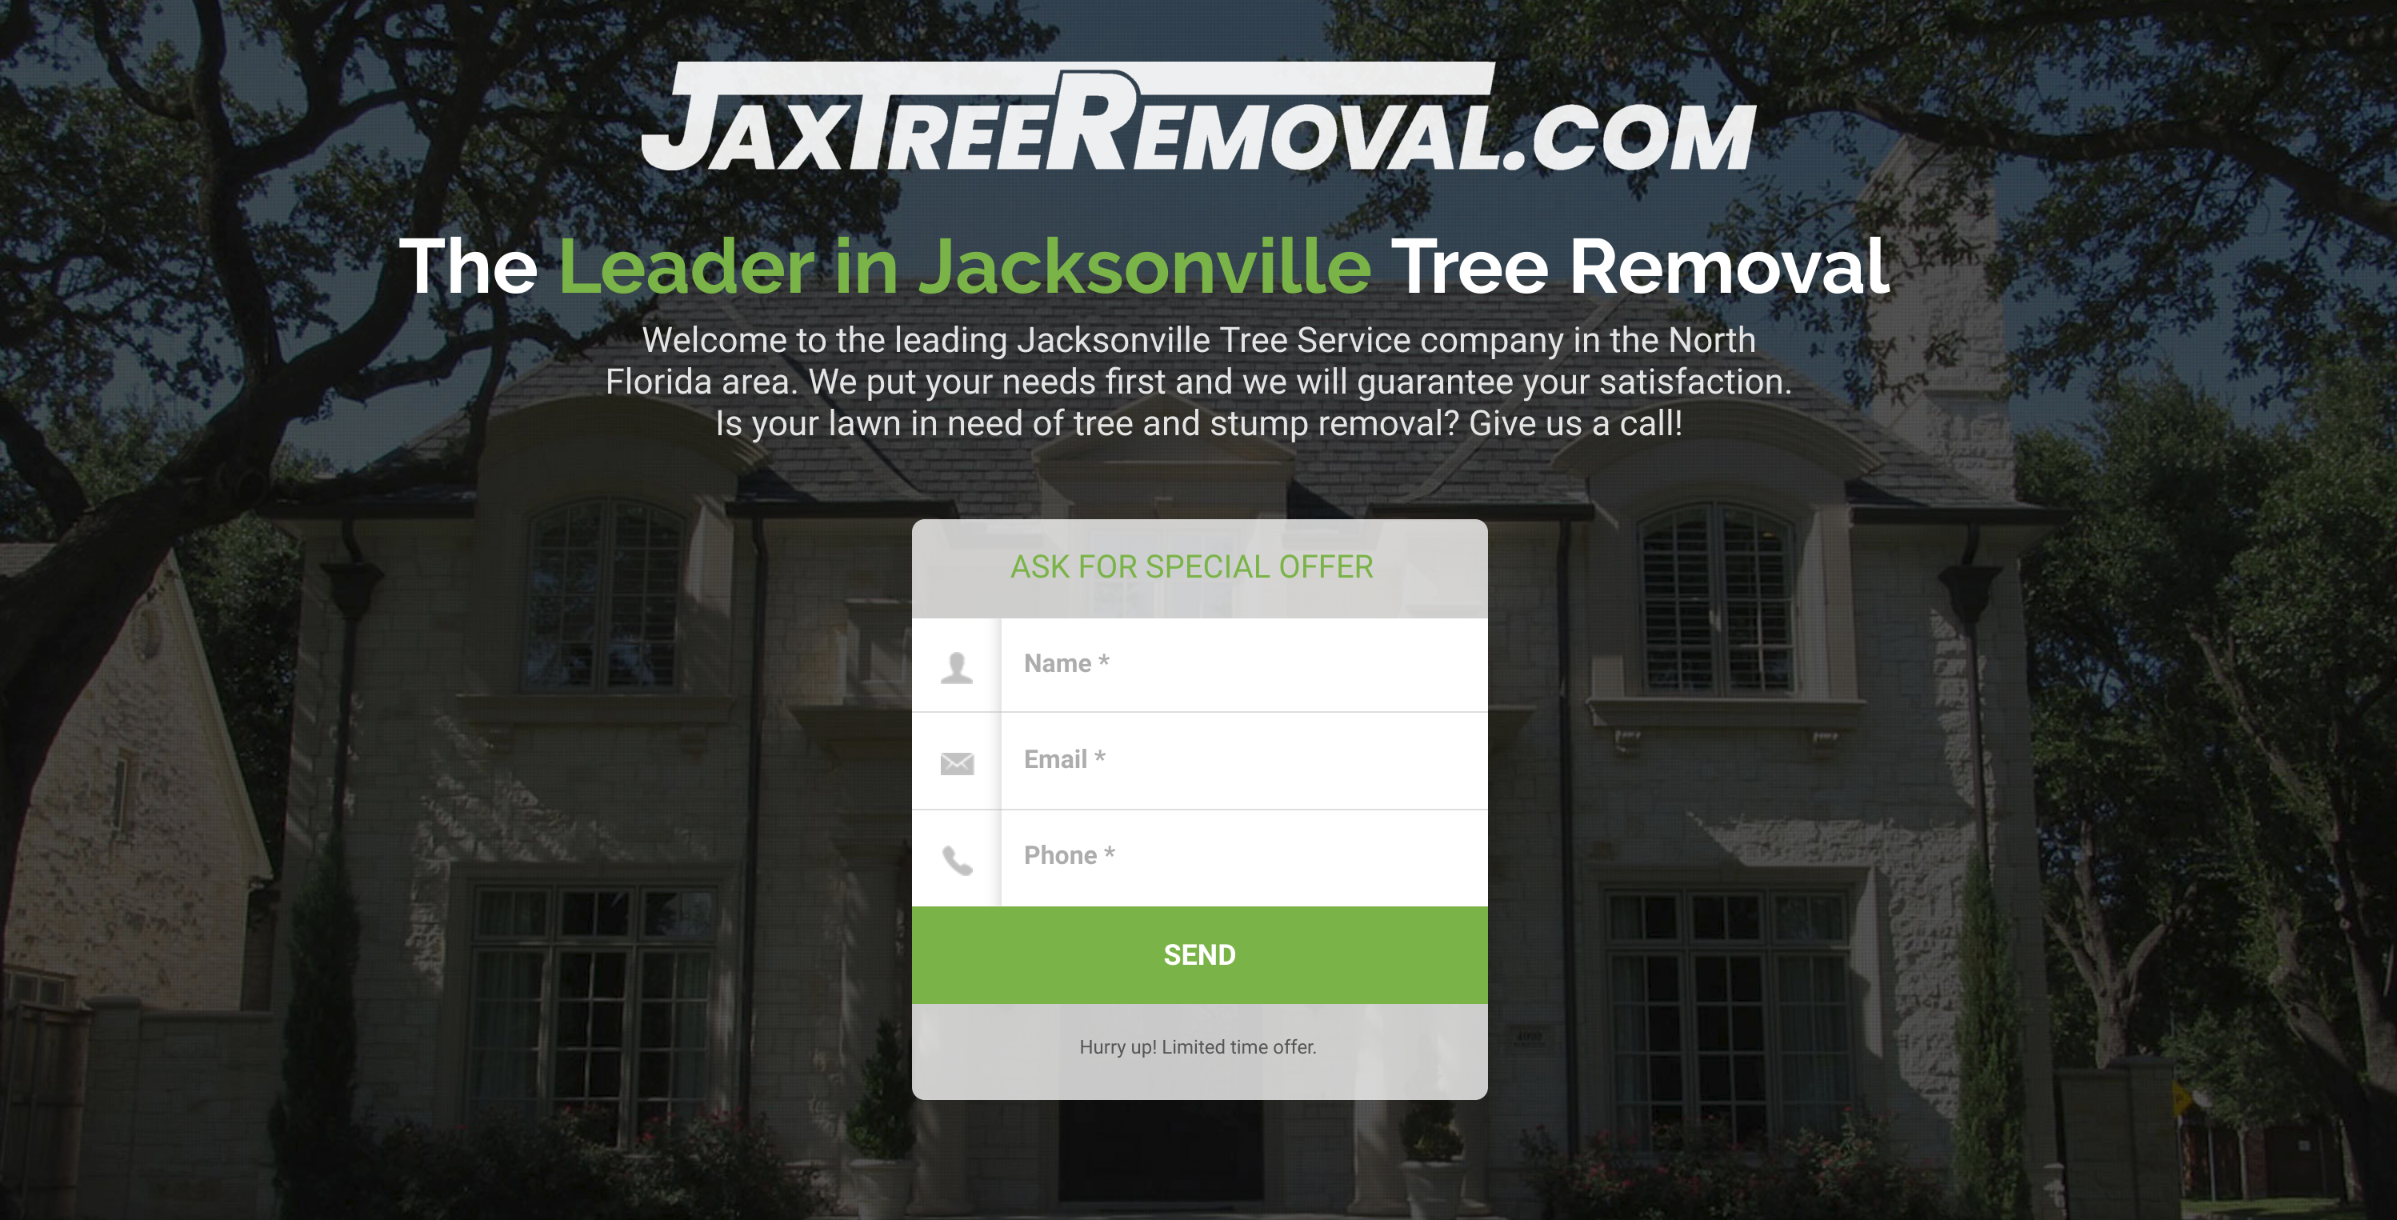 Jax Tree Removal Homepage.png